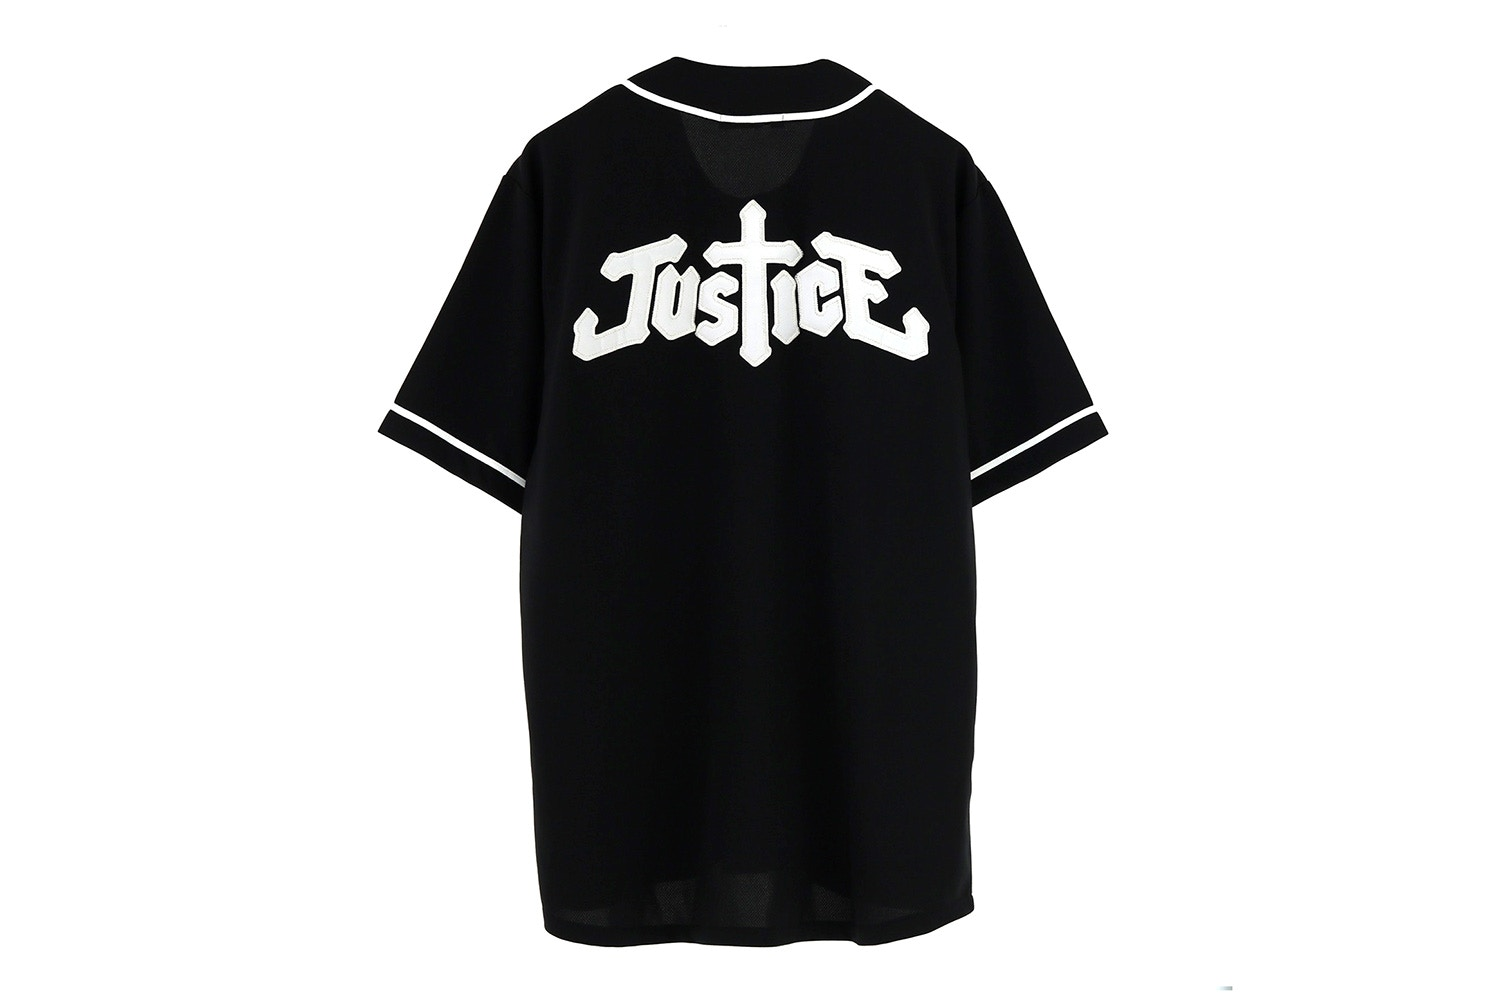 Ed Banger announces special Justice pop-up store for forthcoming shows in Japan